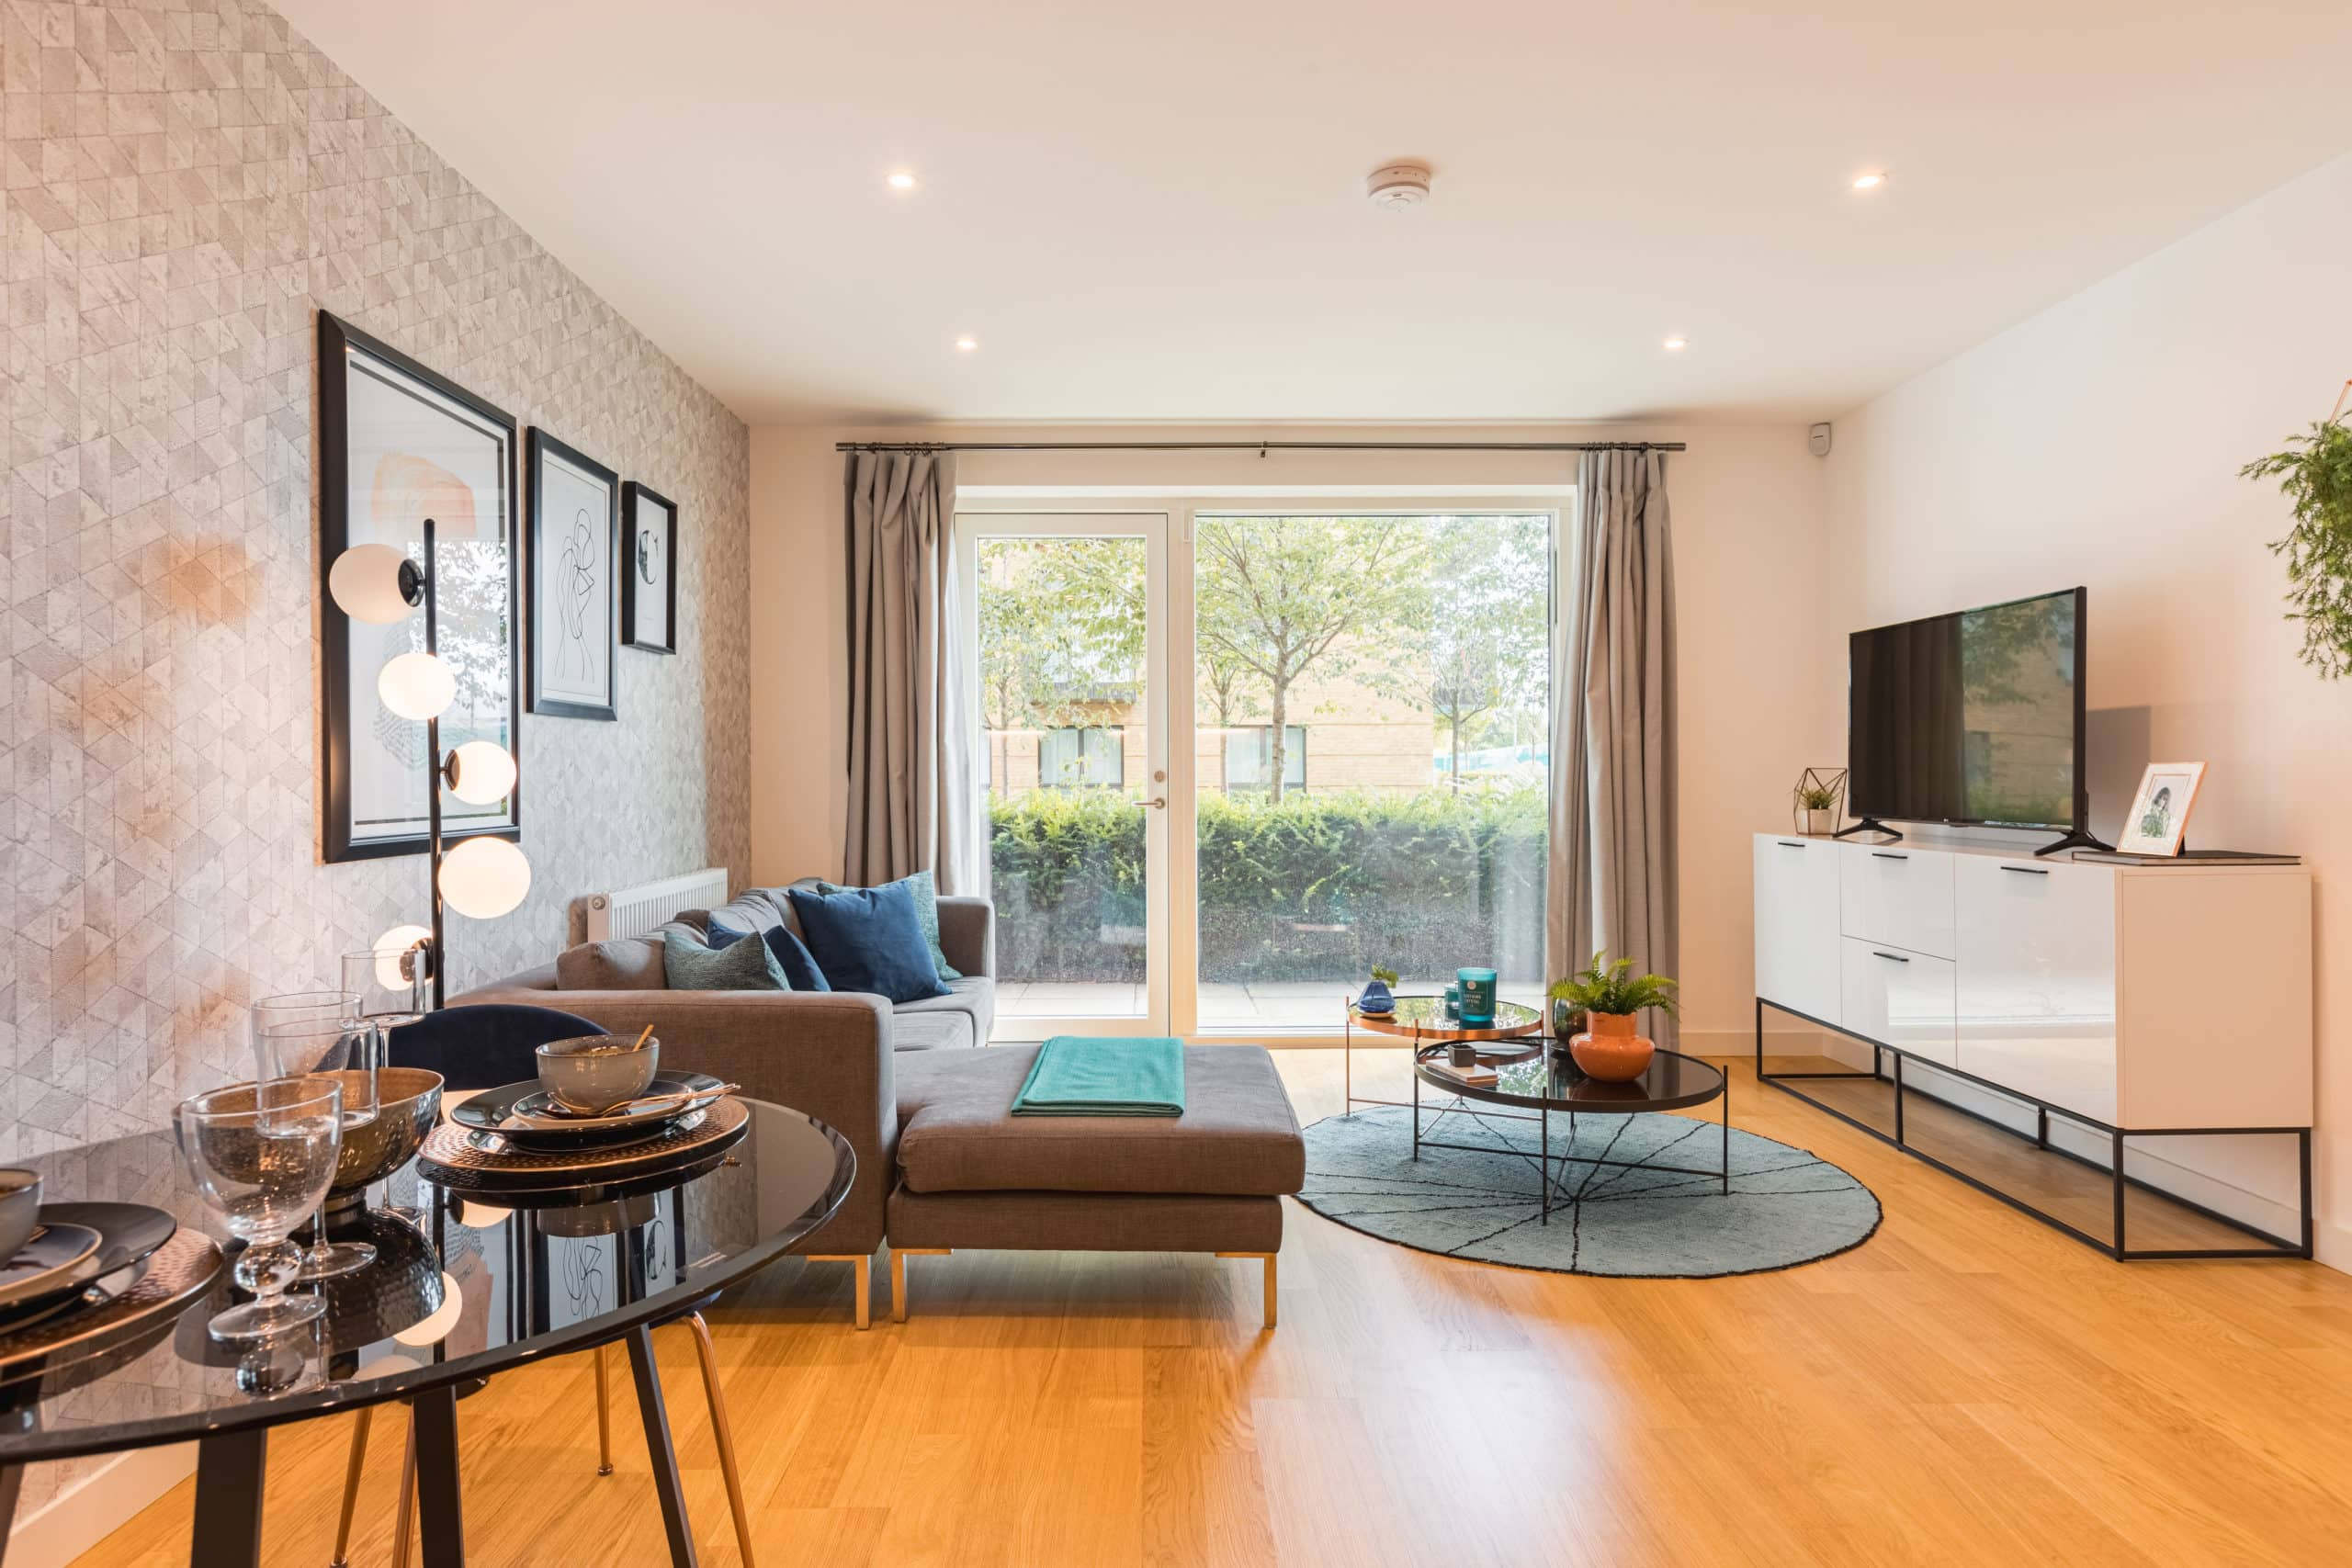 Internal photography of ARRO by Catalyst - Shared Ownership homes available on Share to Buy